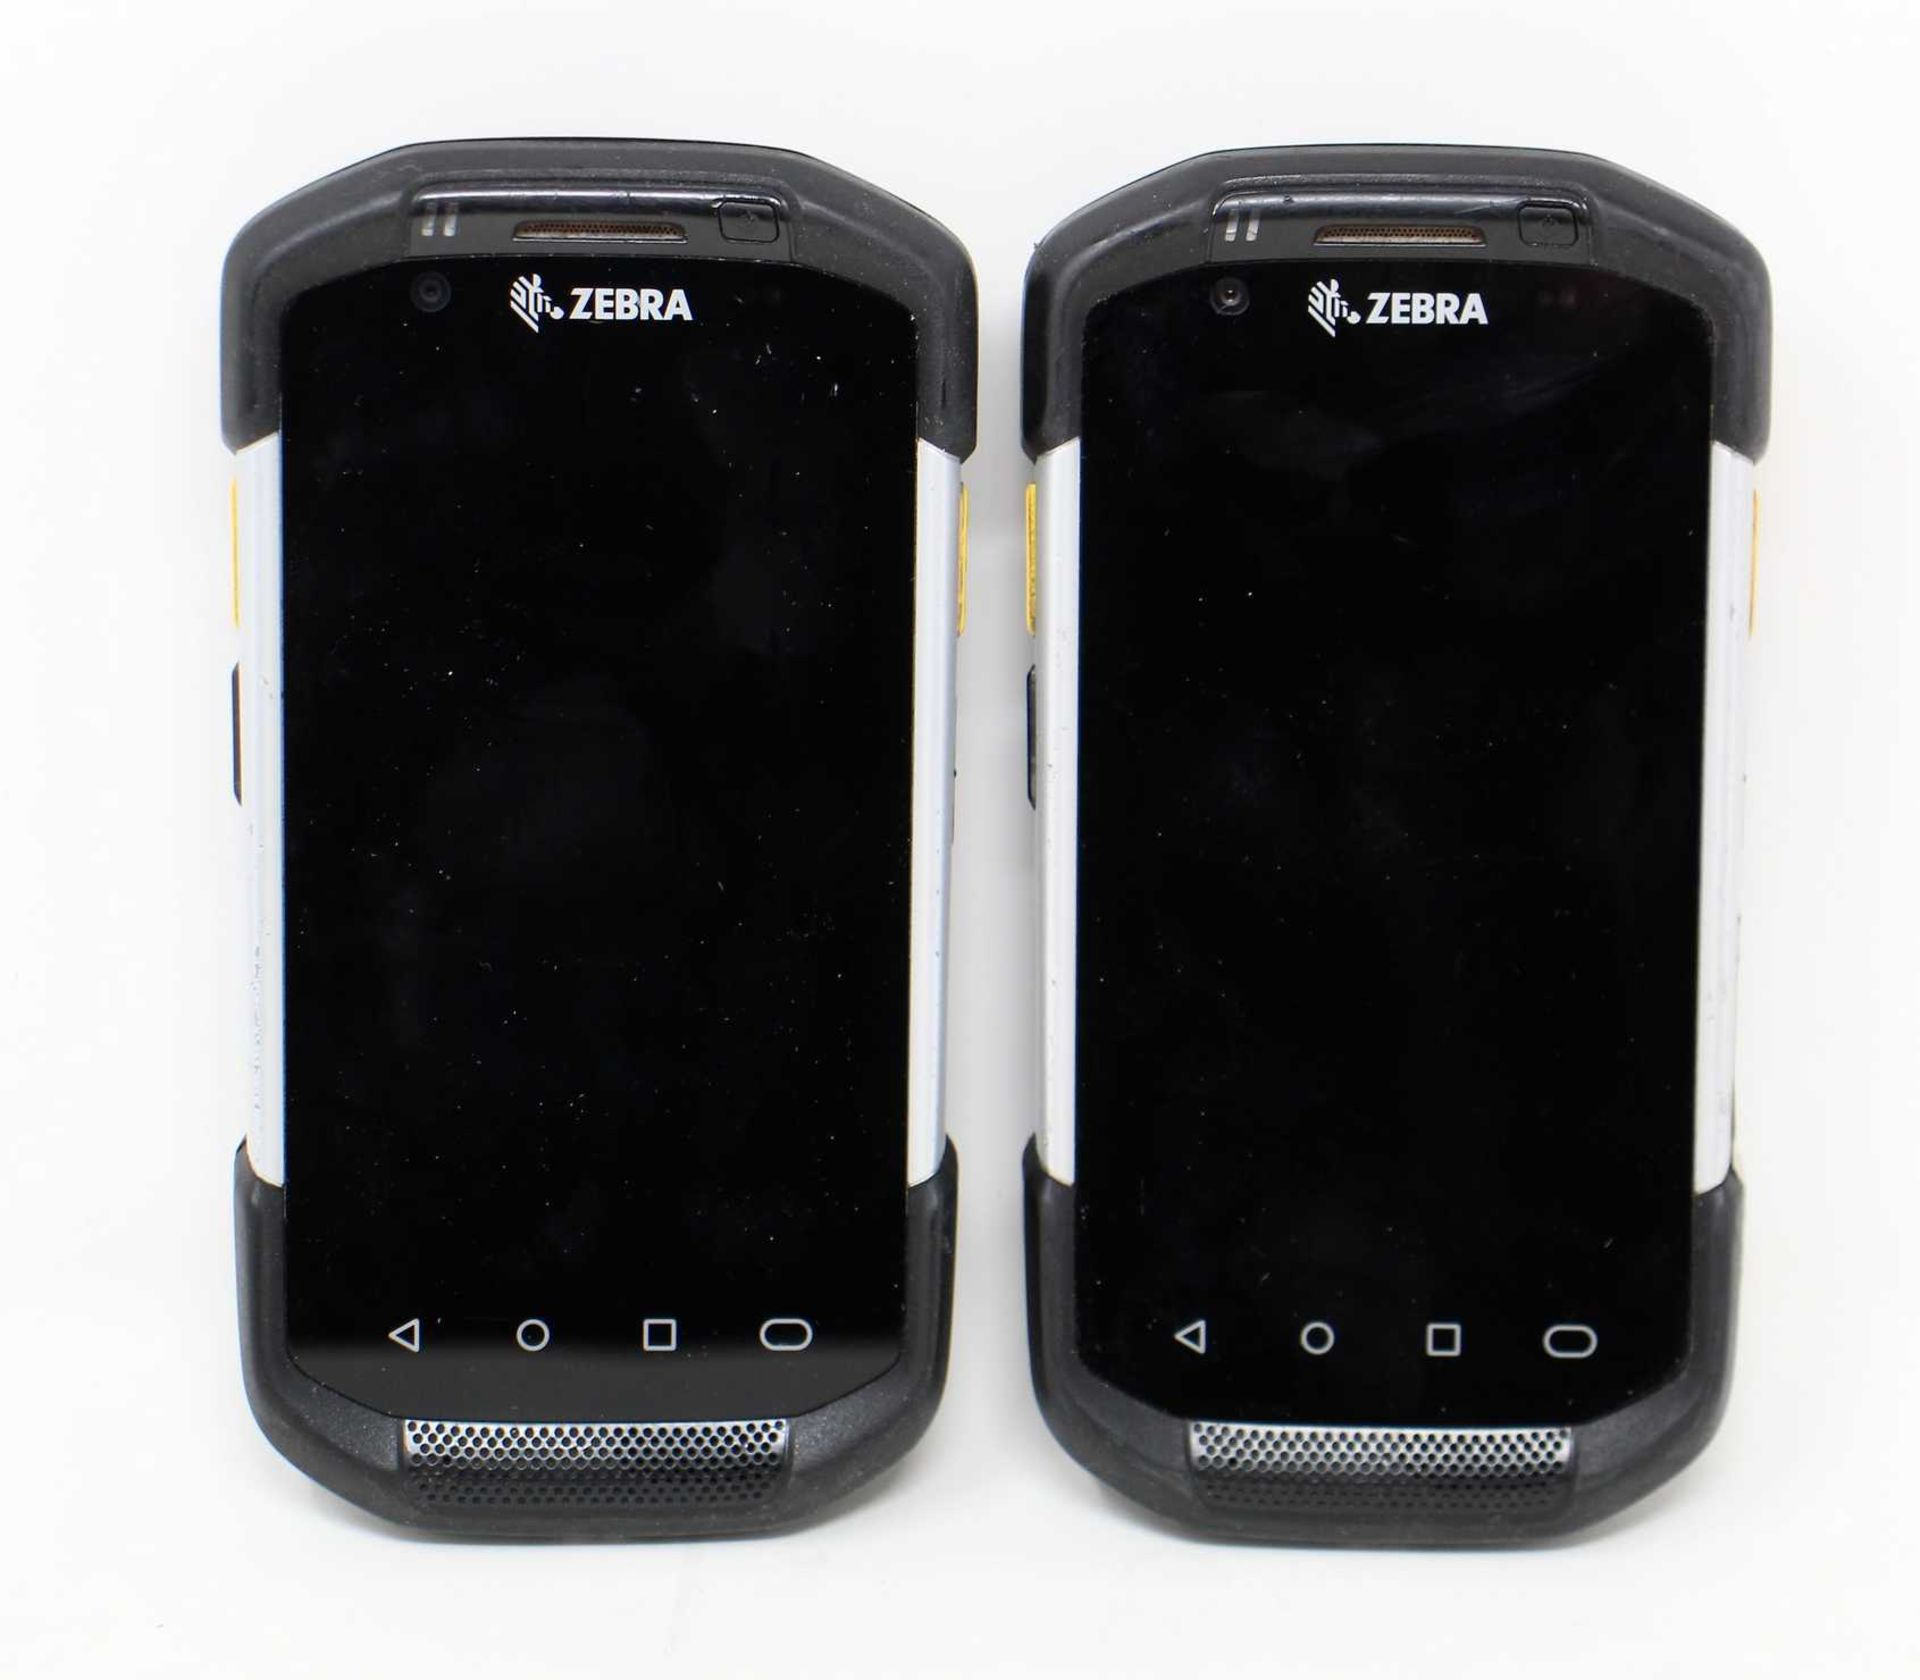 SOLD FOR PARTS: Two pre-owned Zebra TC77 Handheld Mobile Computer (M/N: TC77HL-5ME24BG-A6) (